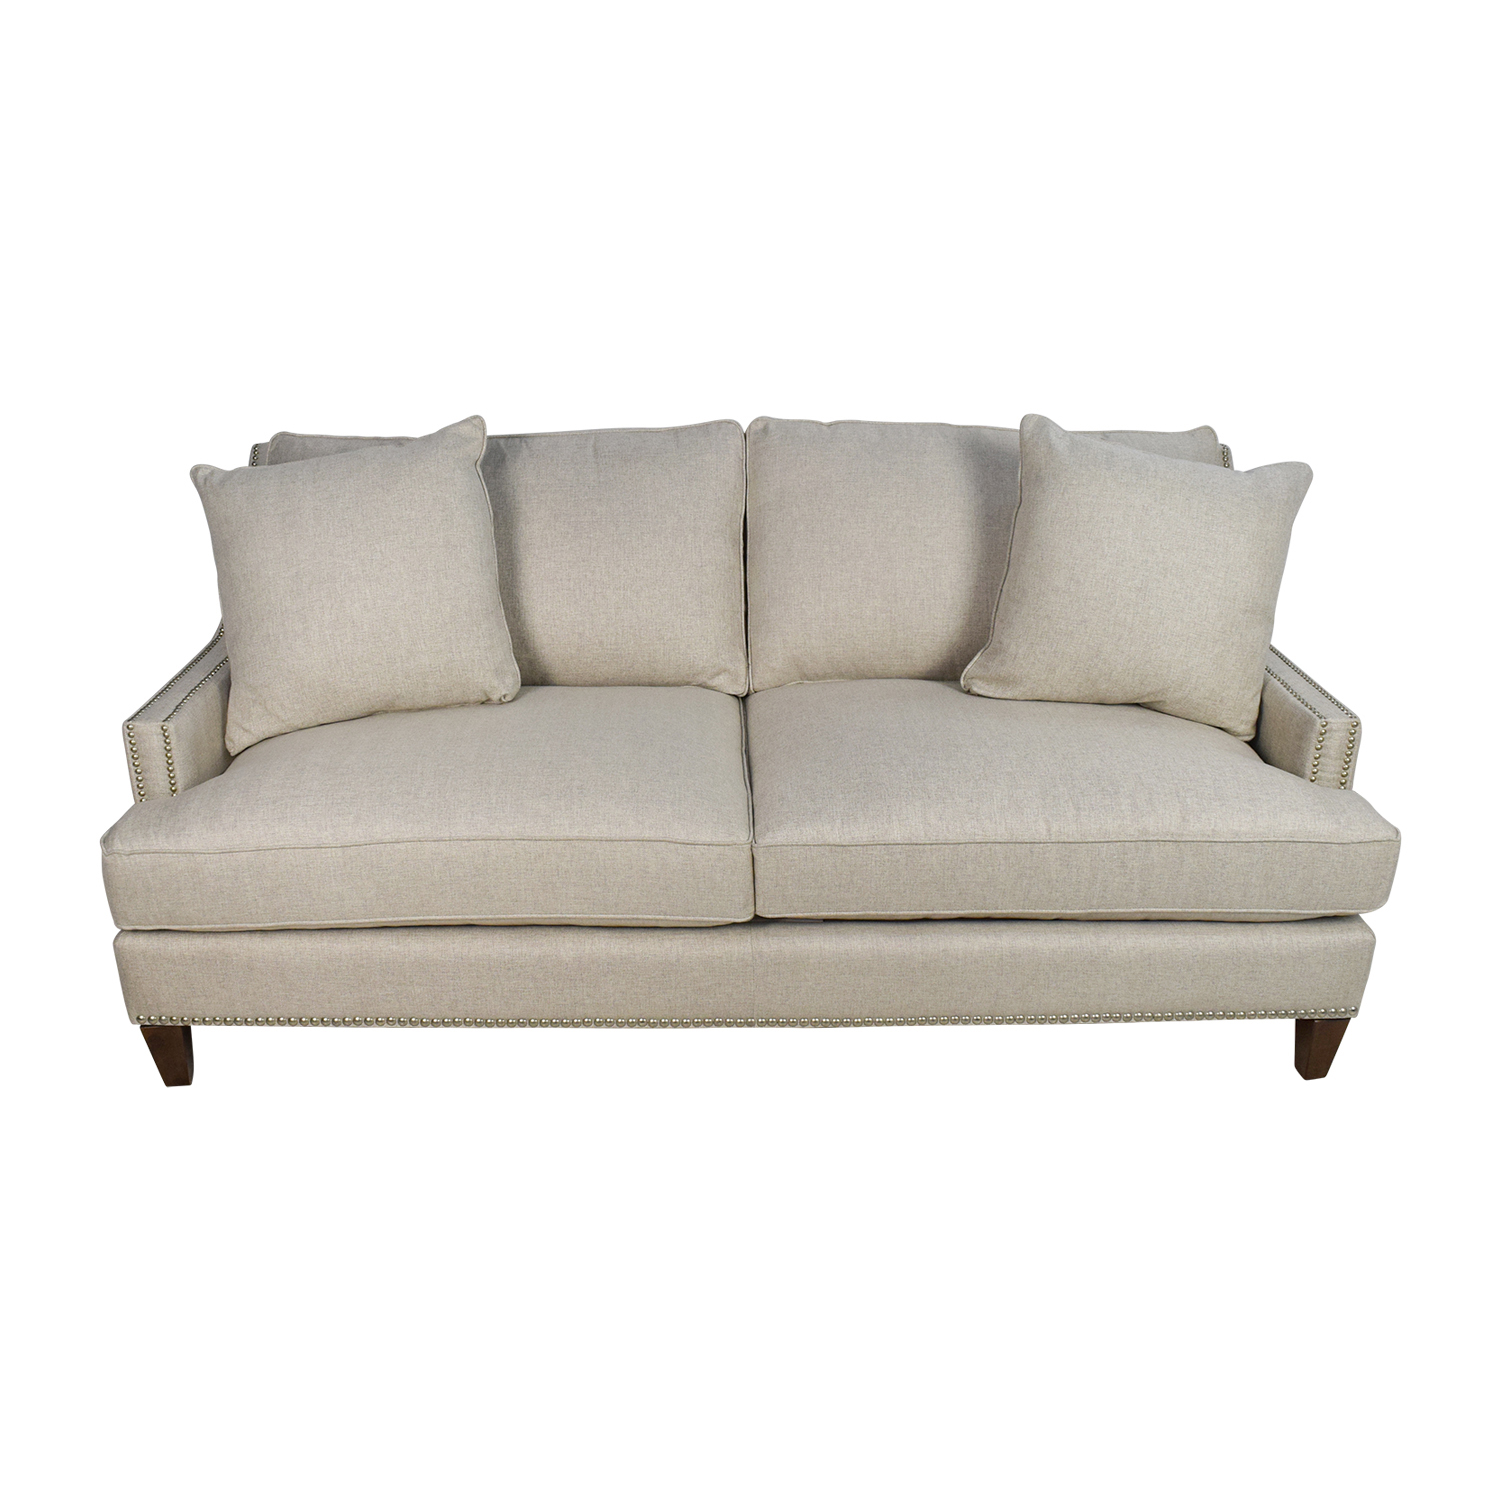 jennifer convertible sofas on sale shabby chic and chairs 63 off italian navy leather tufted sofa